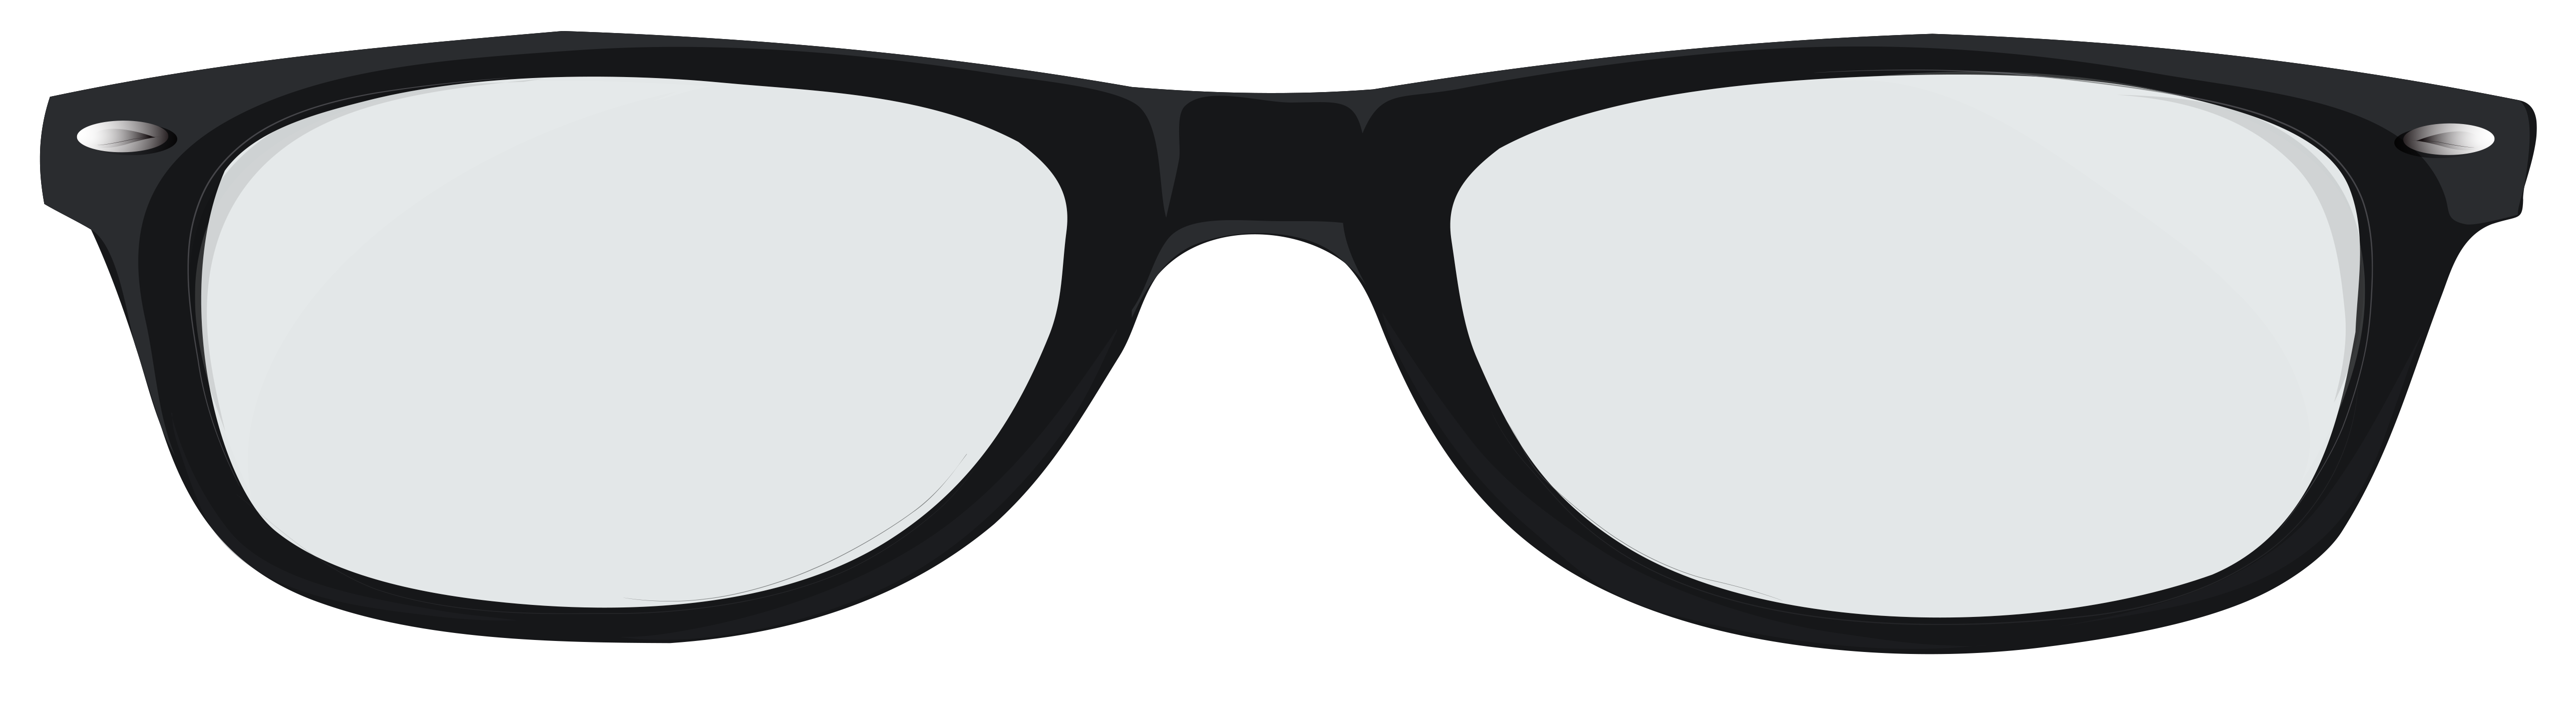 Png pictures gallery yopriceville. Glasses clipart brown